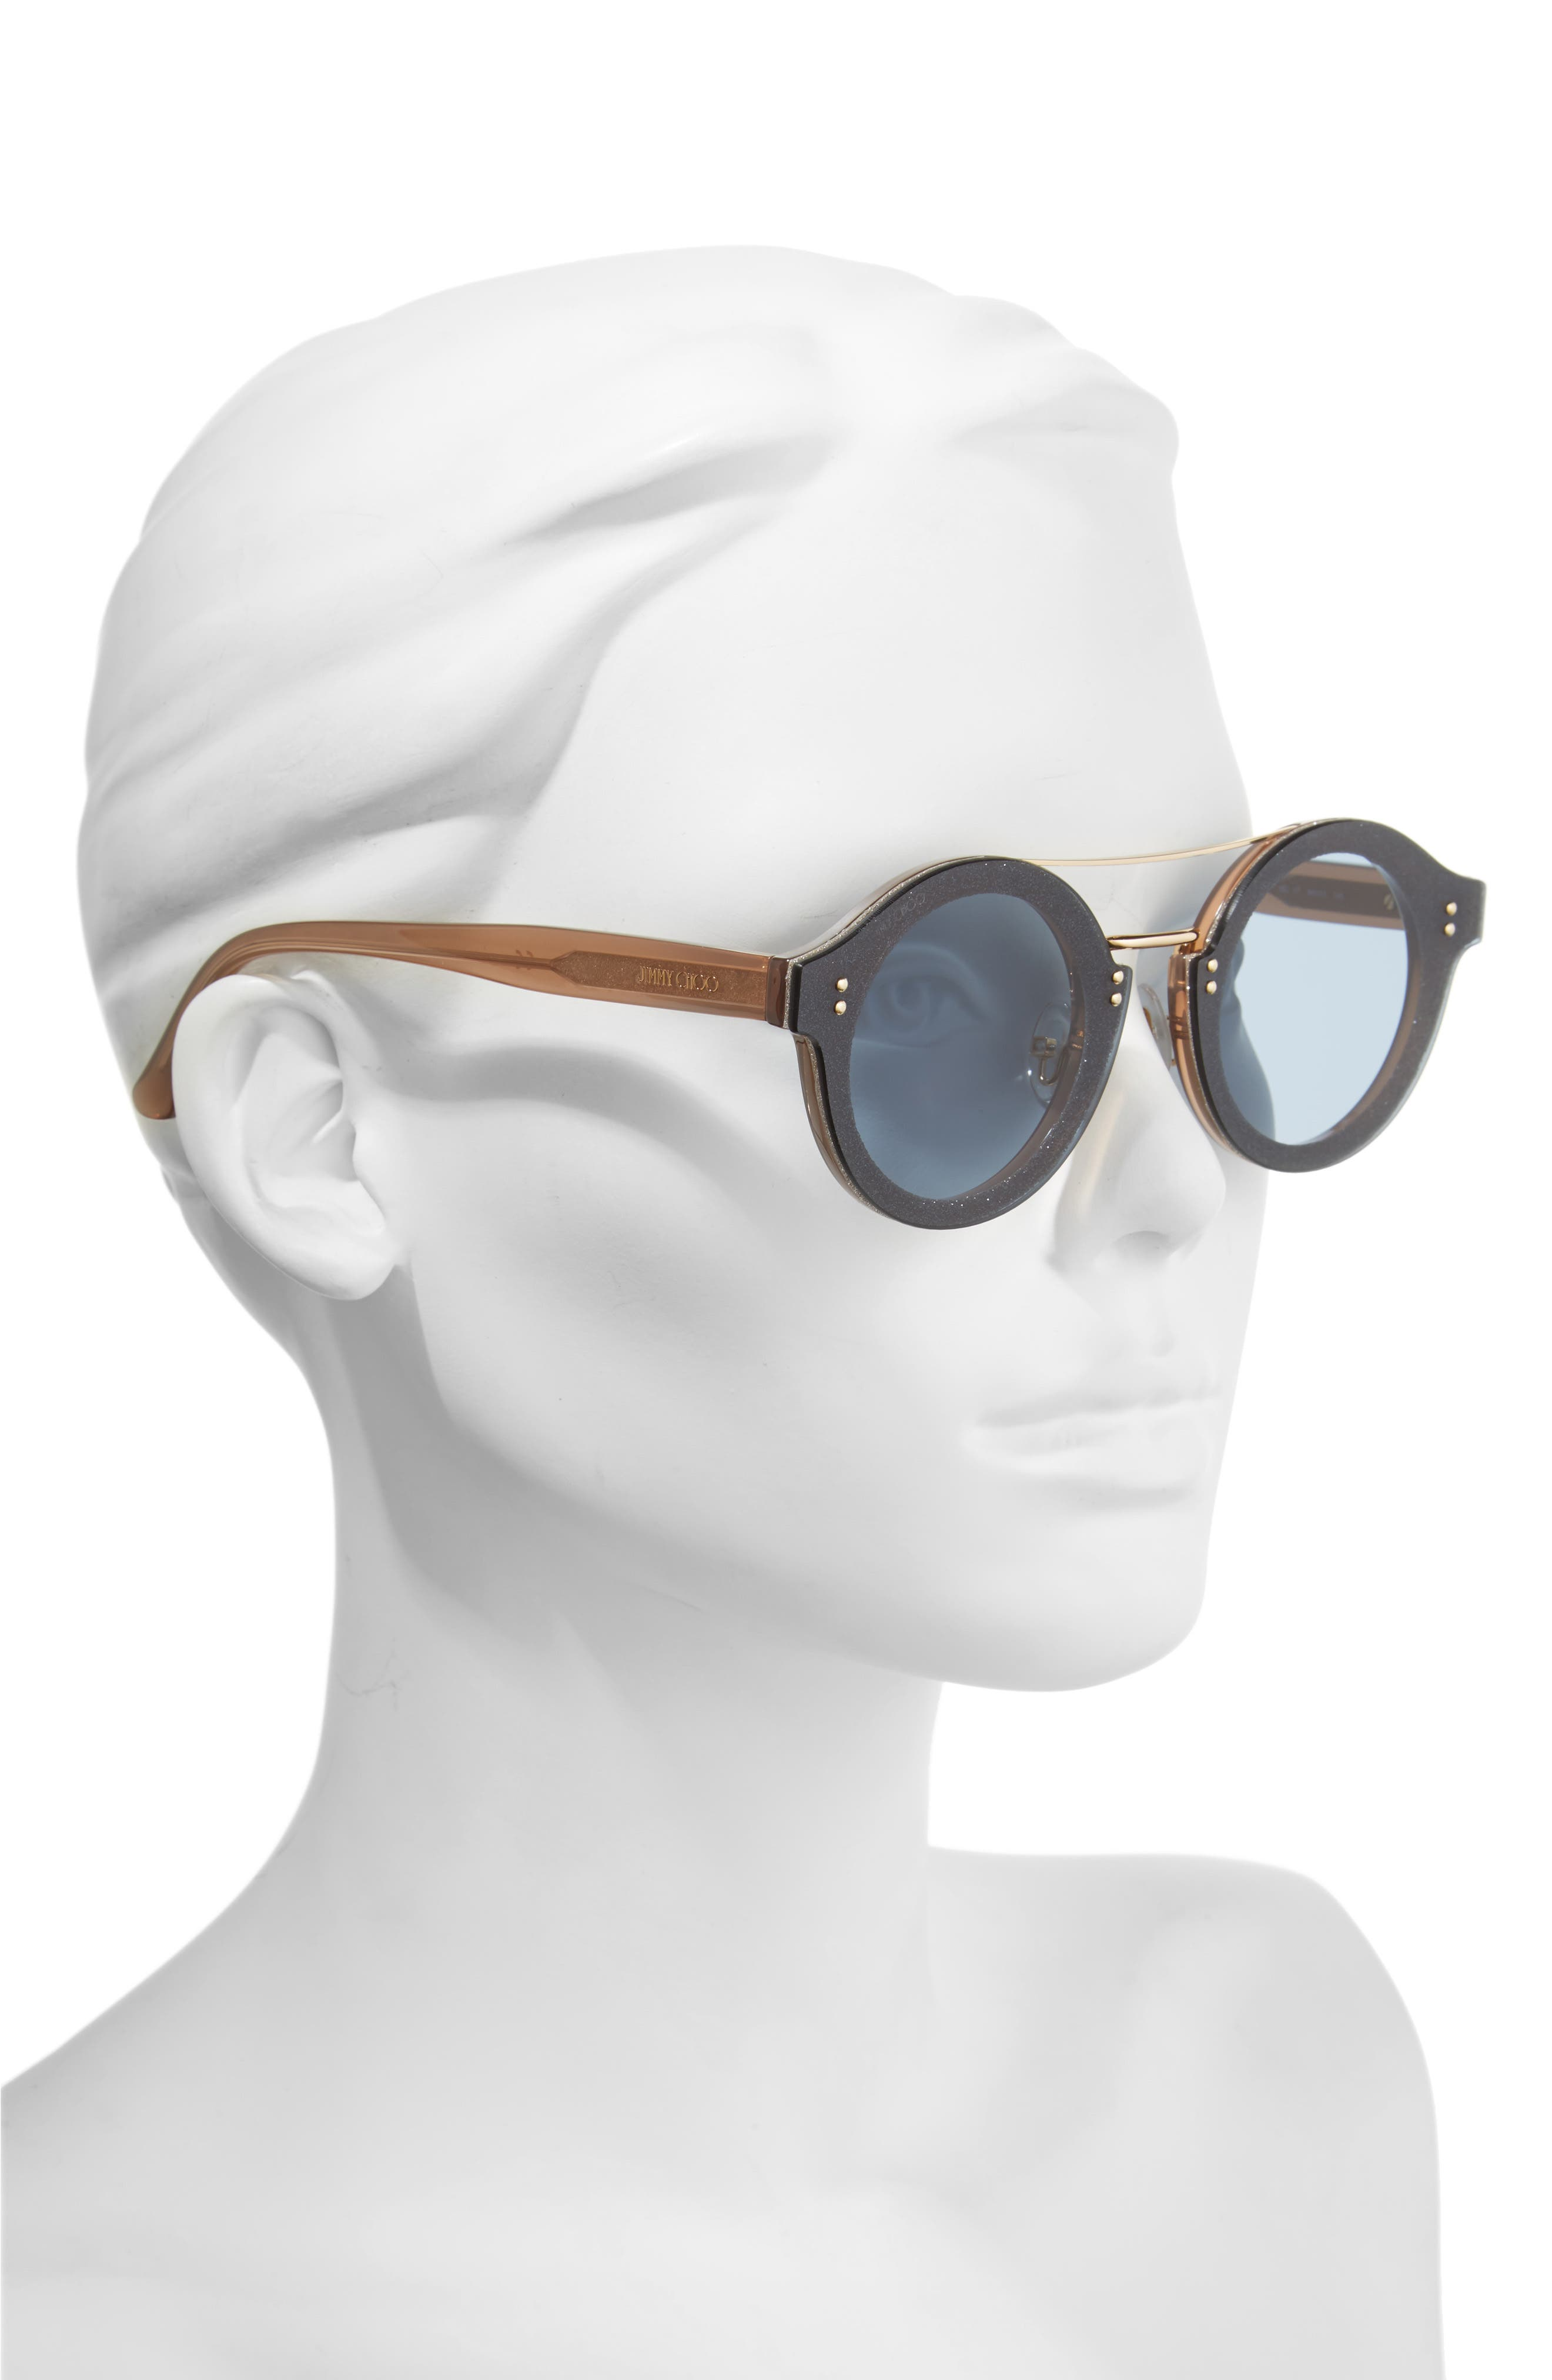 Monties 64mm Round Sunglasses,                             Alternate thumbnail 2, color,                             NUDE/ GLITTER/ GOLD